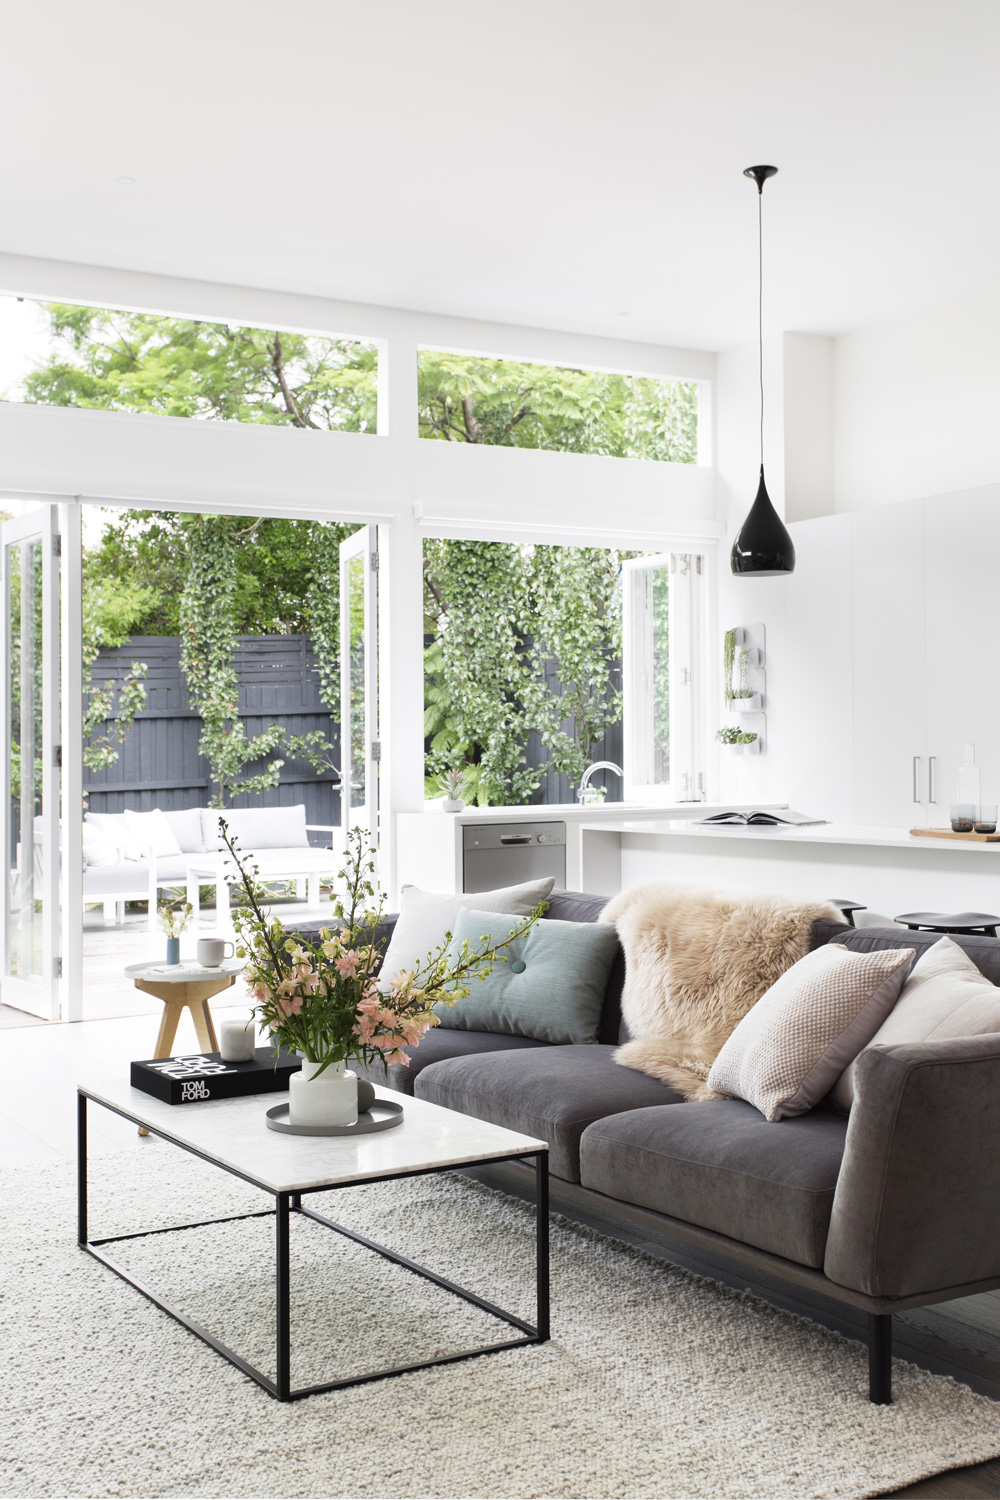 3 ways psychology can support interior styling hygge styling for Interieur styling amsterdam